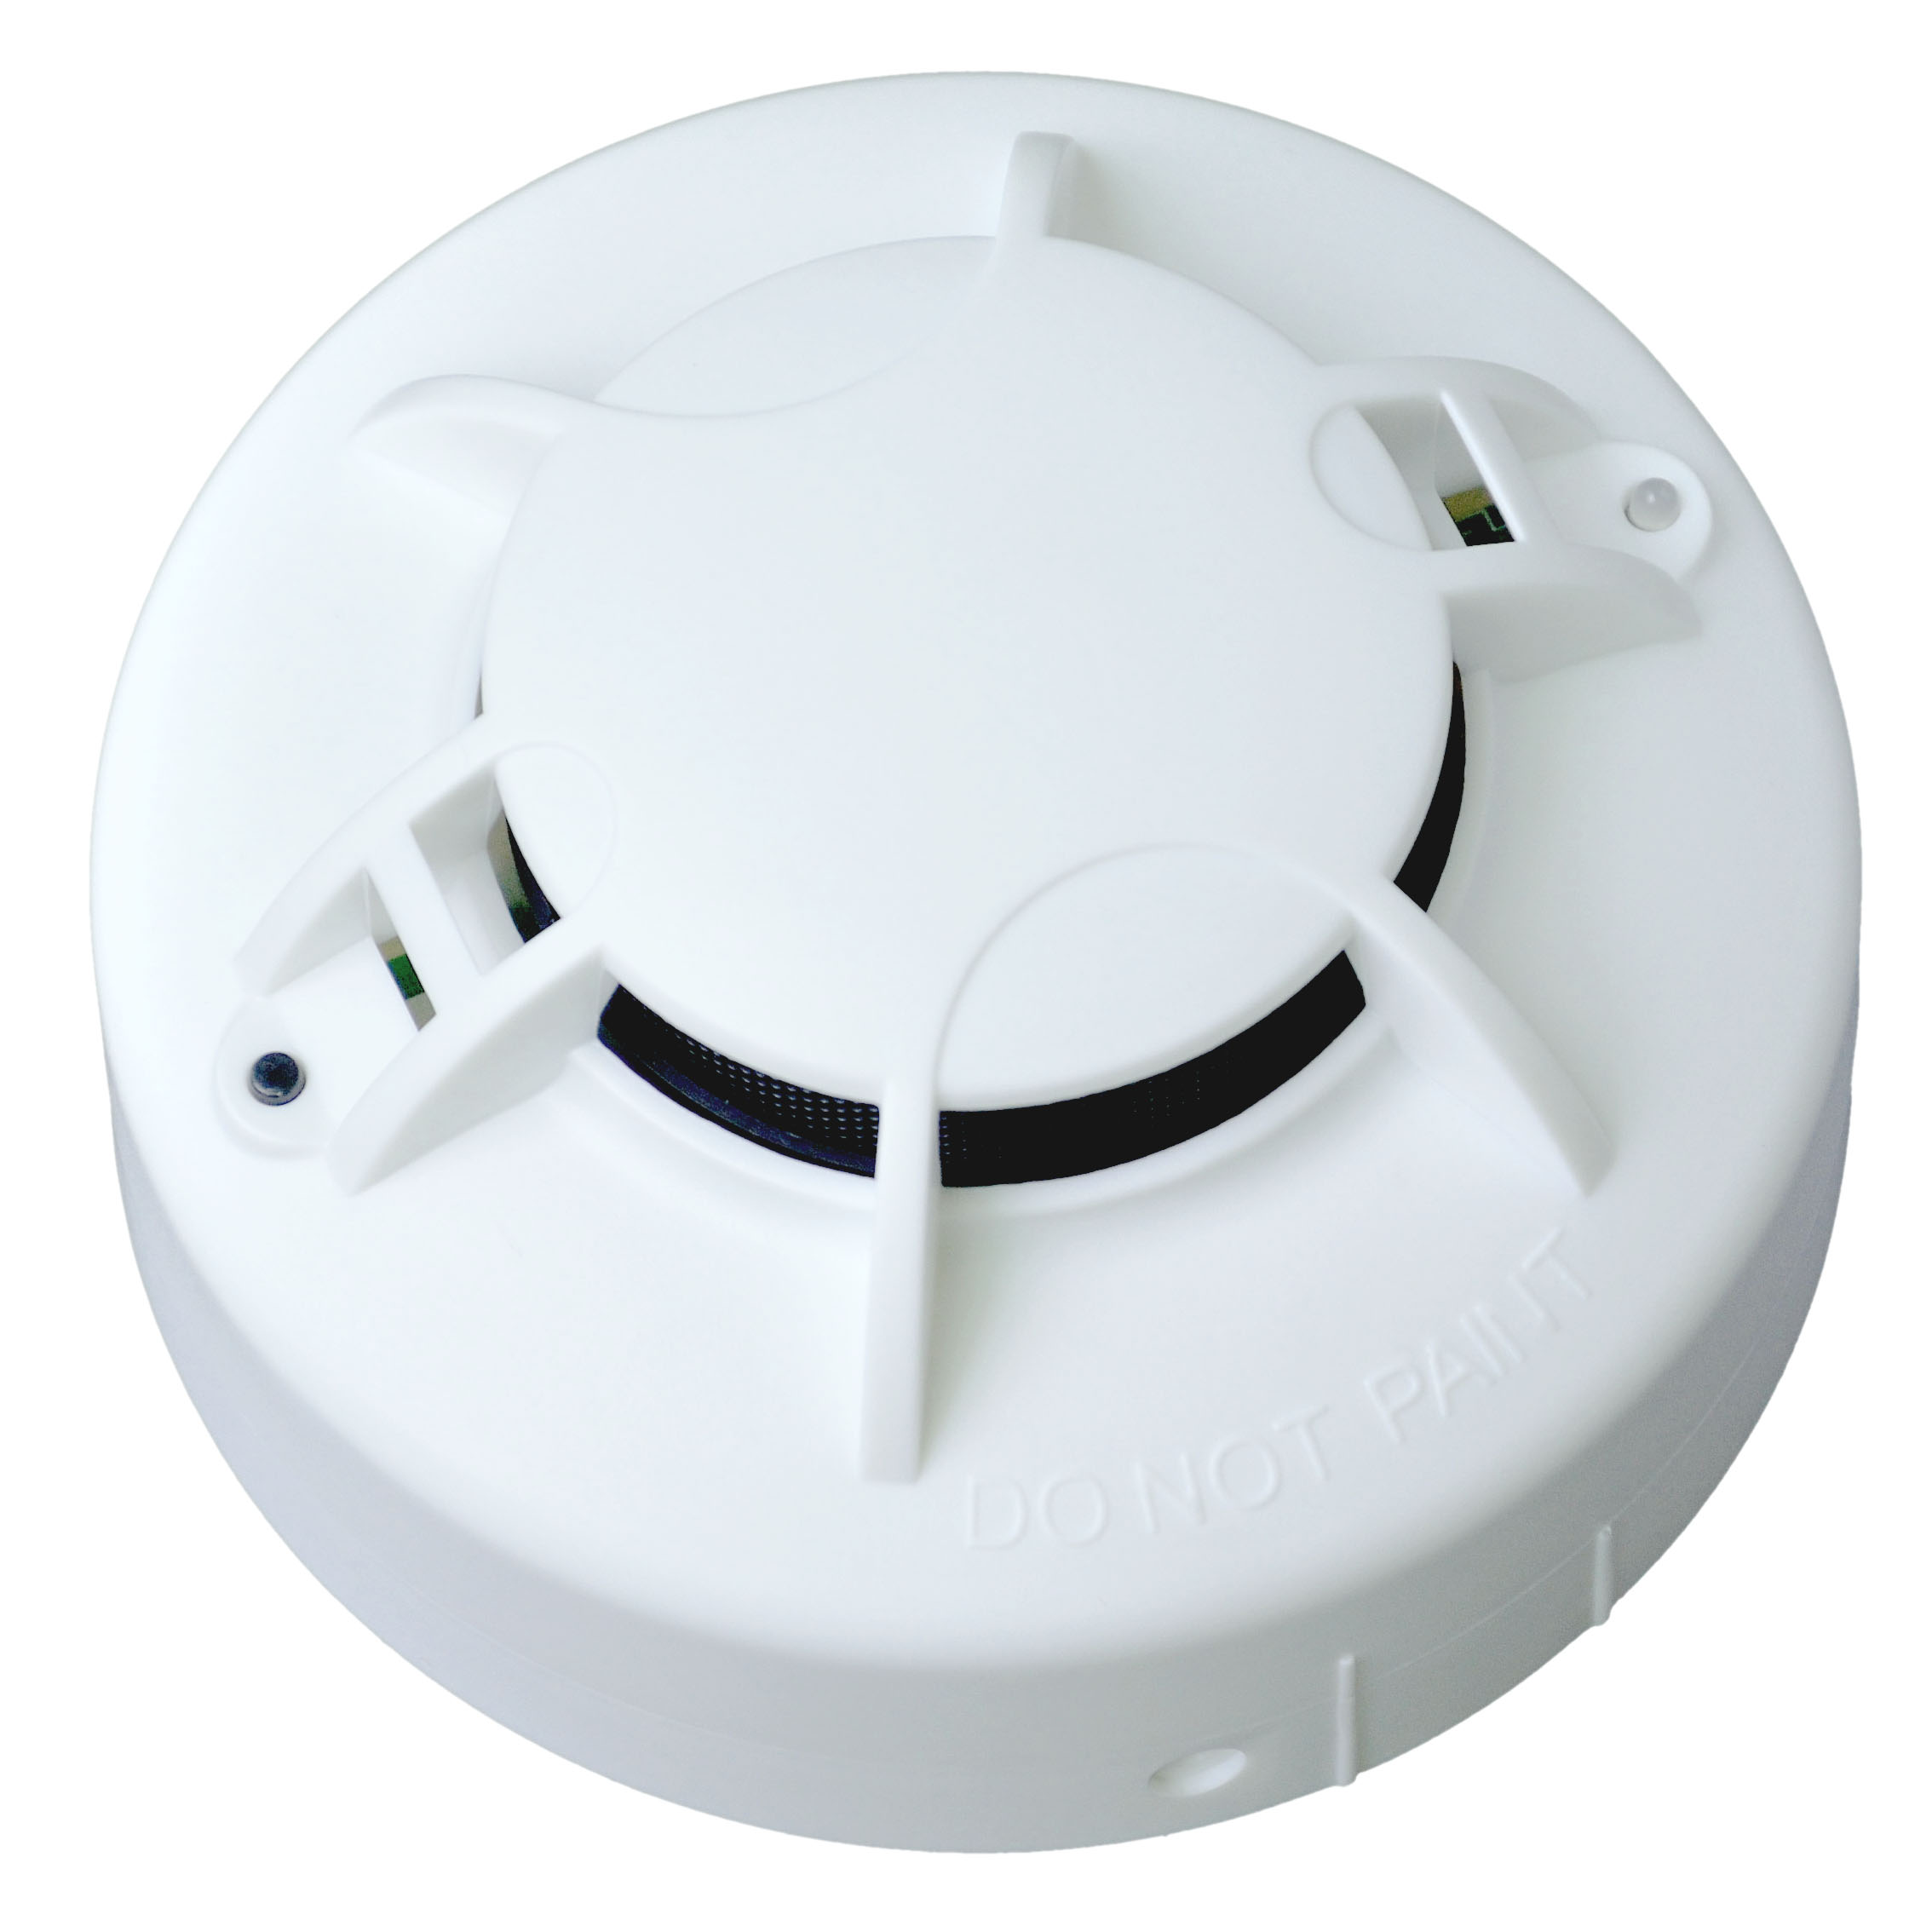 4 wire photoelectric smoke detector ford fiesta sony radio wiring diagram home security burglar alarm fire prevention device shop online